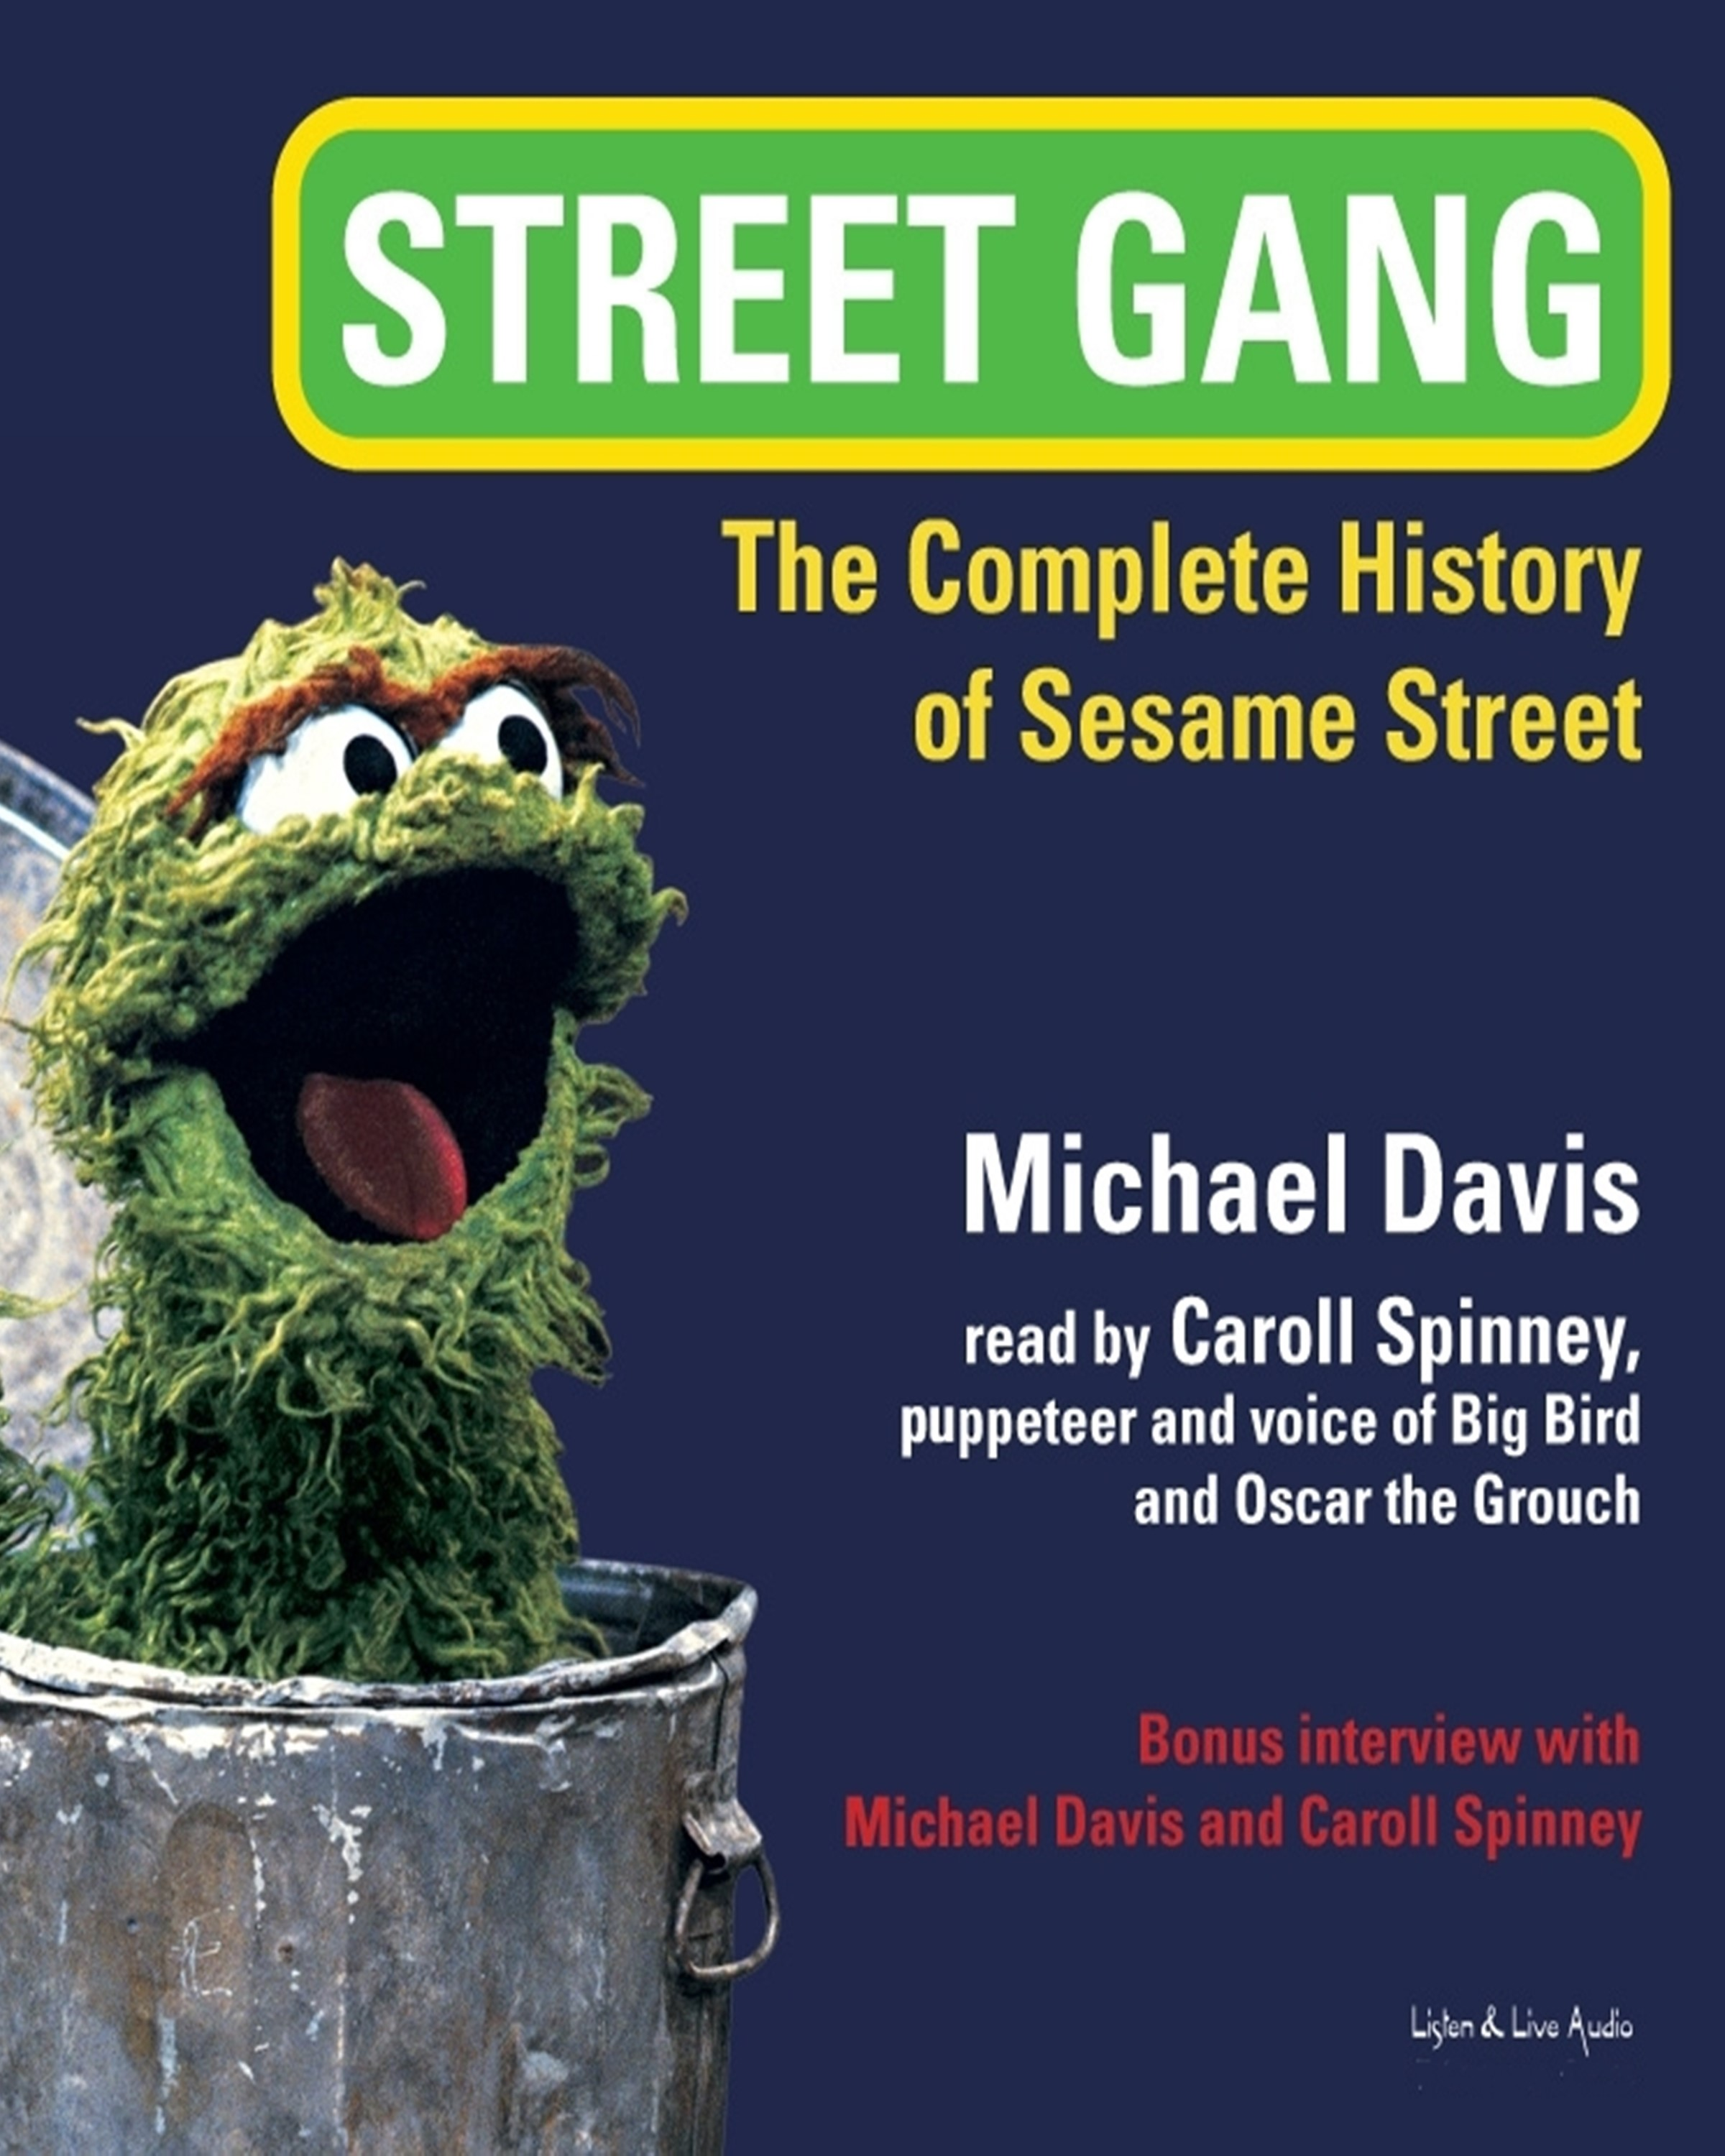 Street Gang: The Complete History Of Sesame Street [7CD]